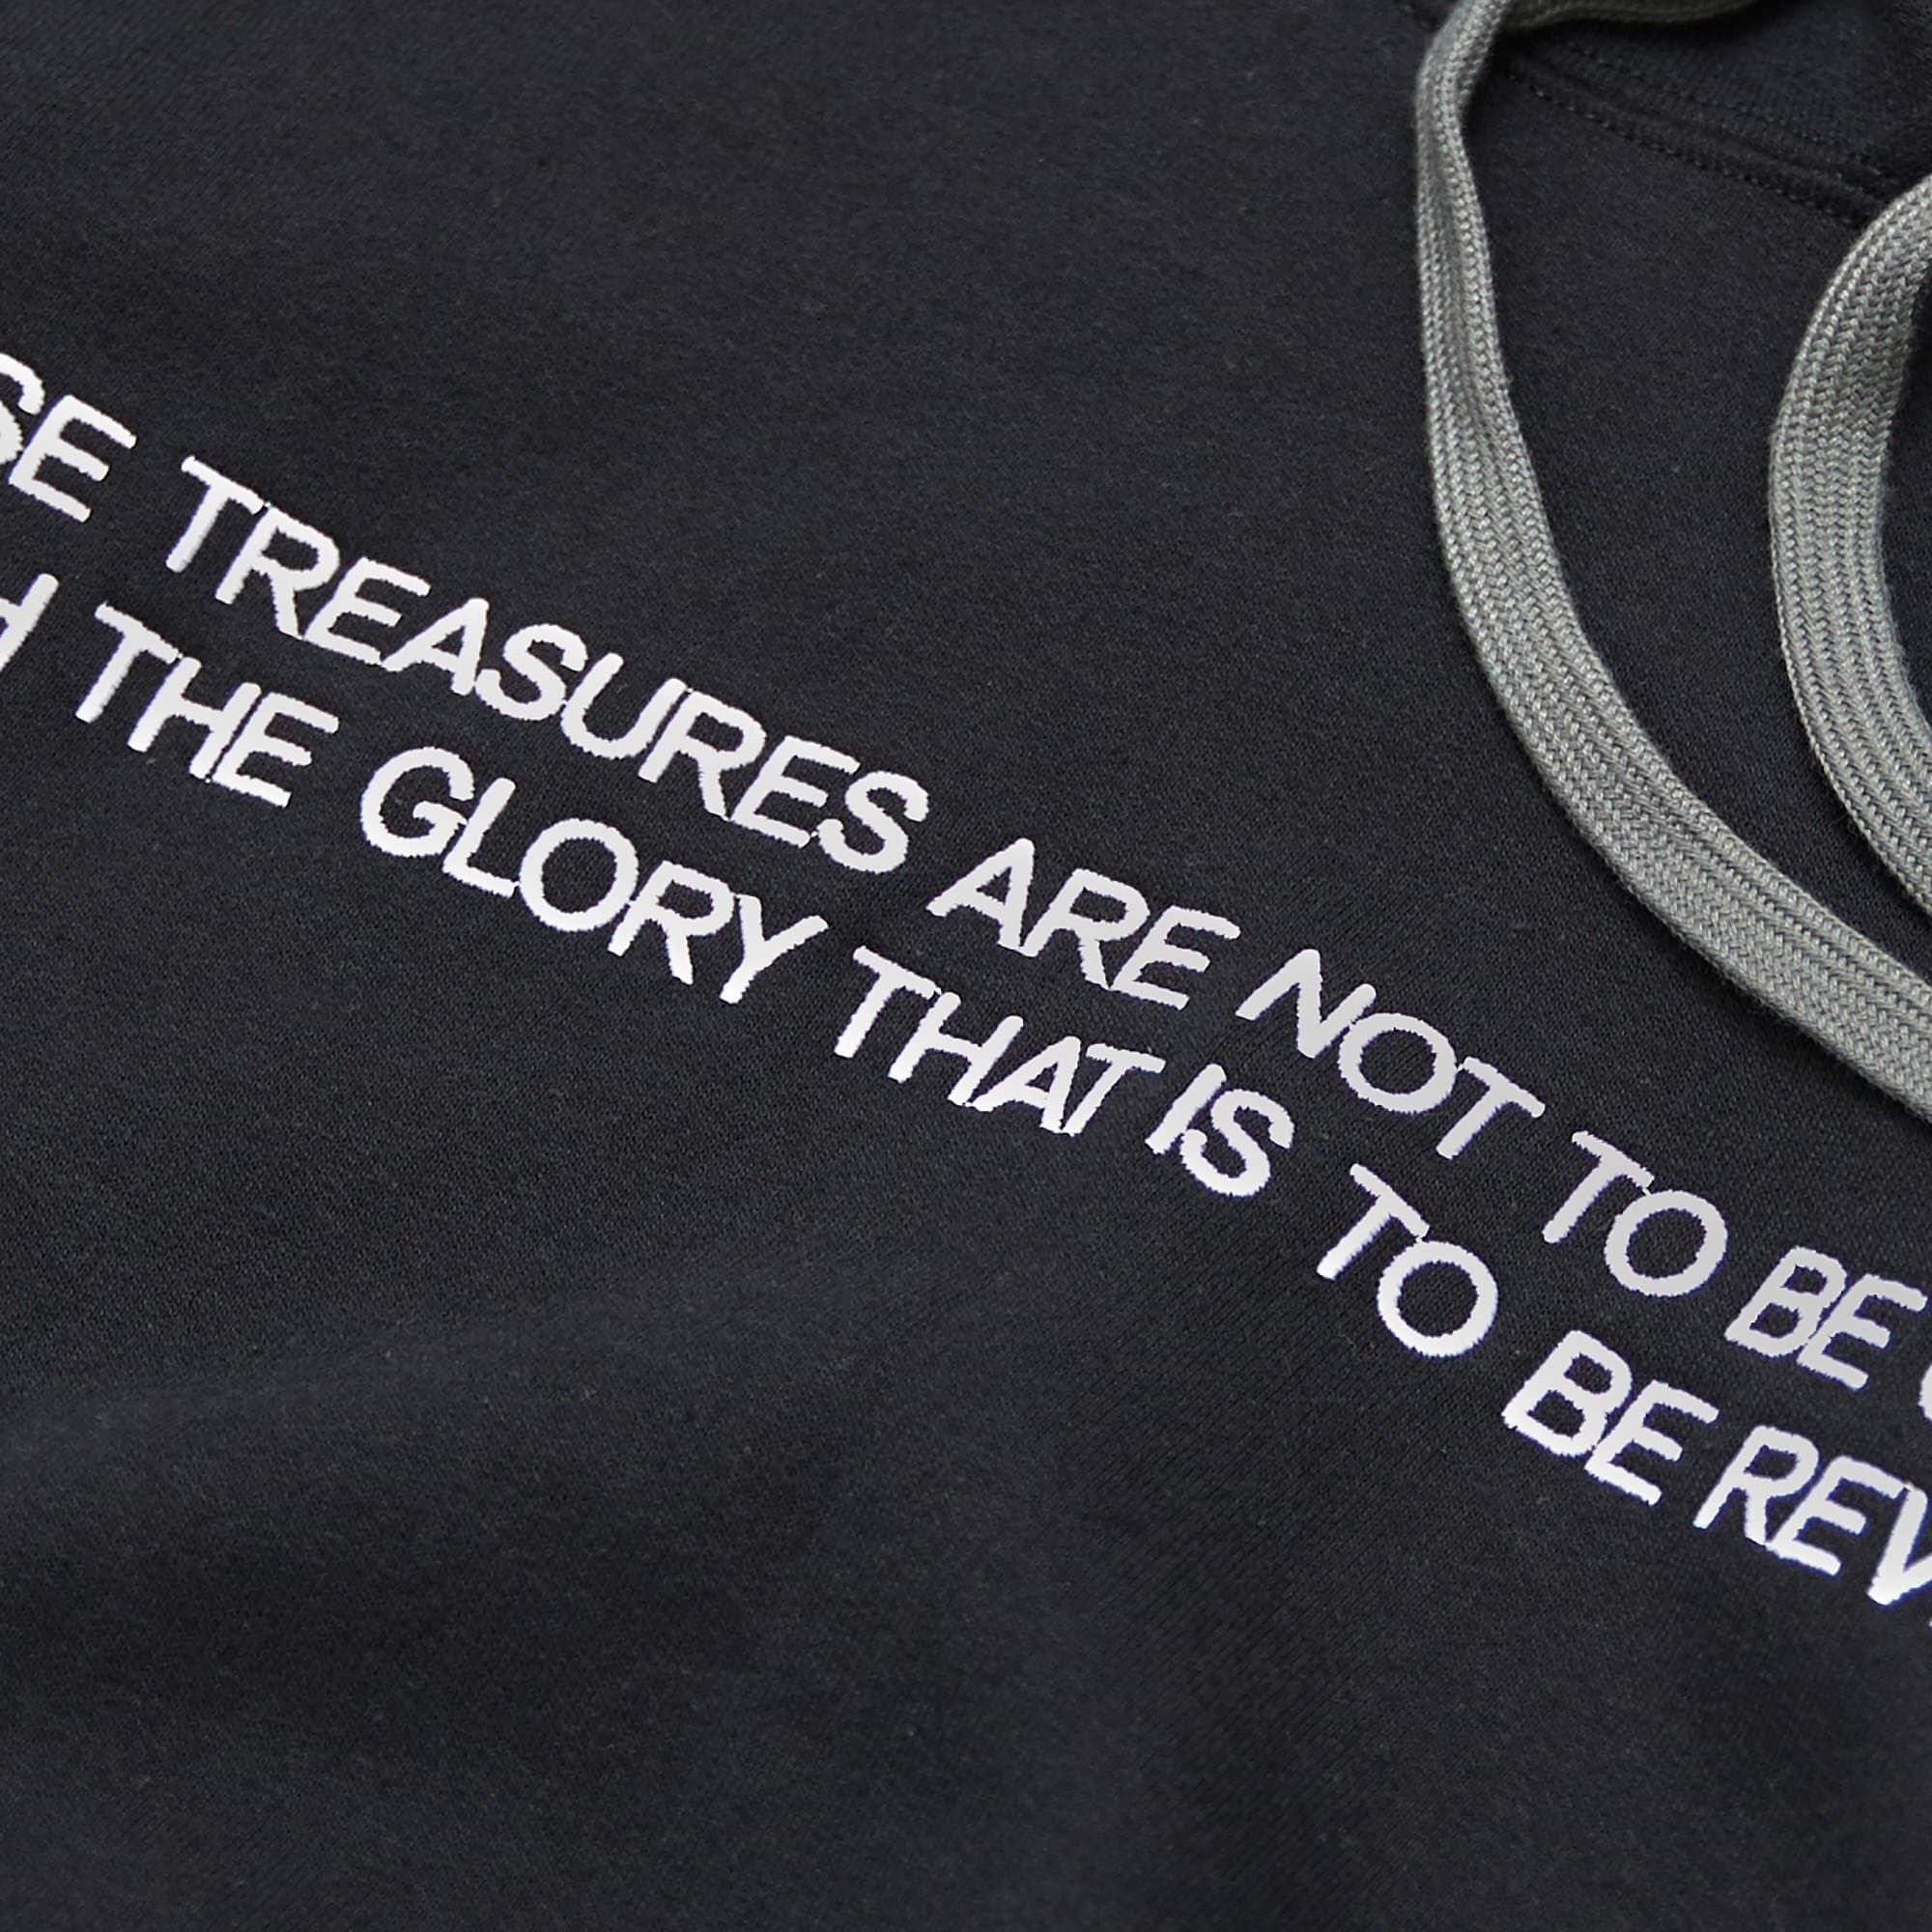 'Treasures' Pull Over Hoodie